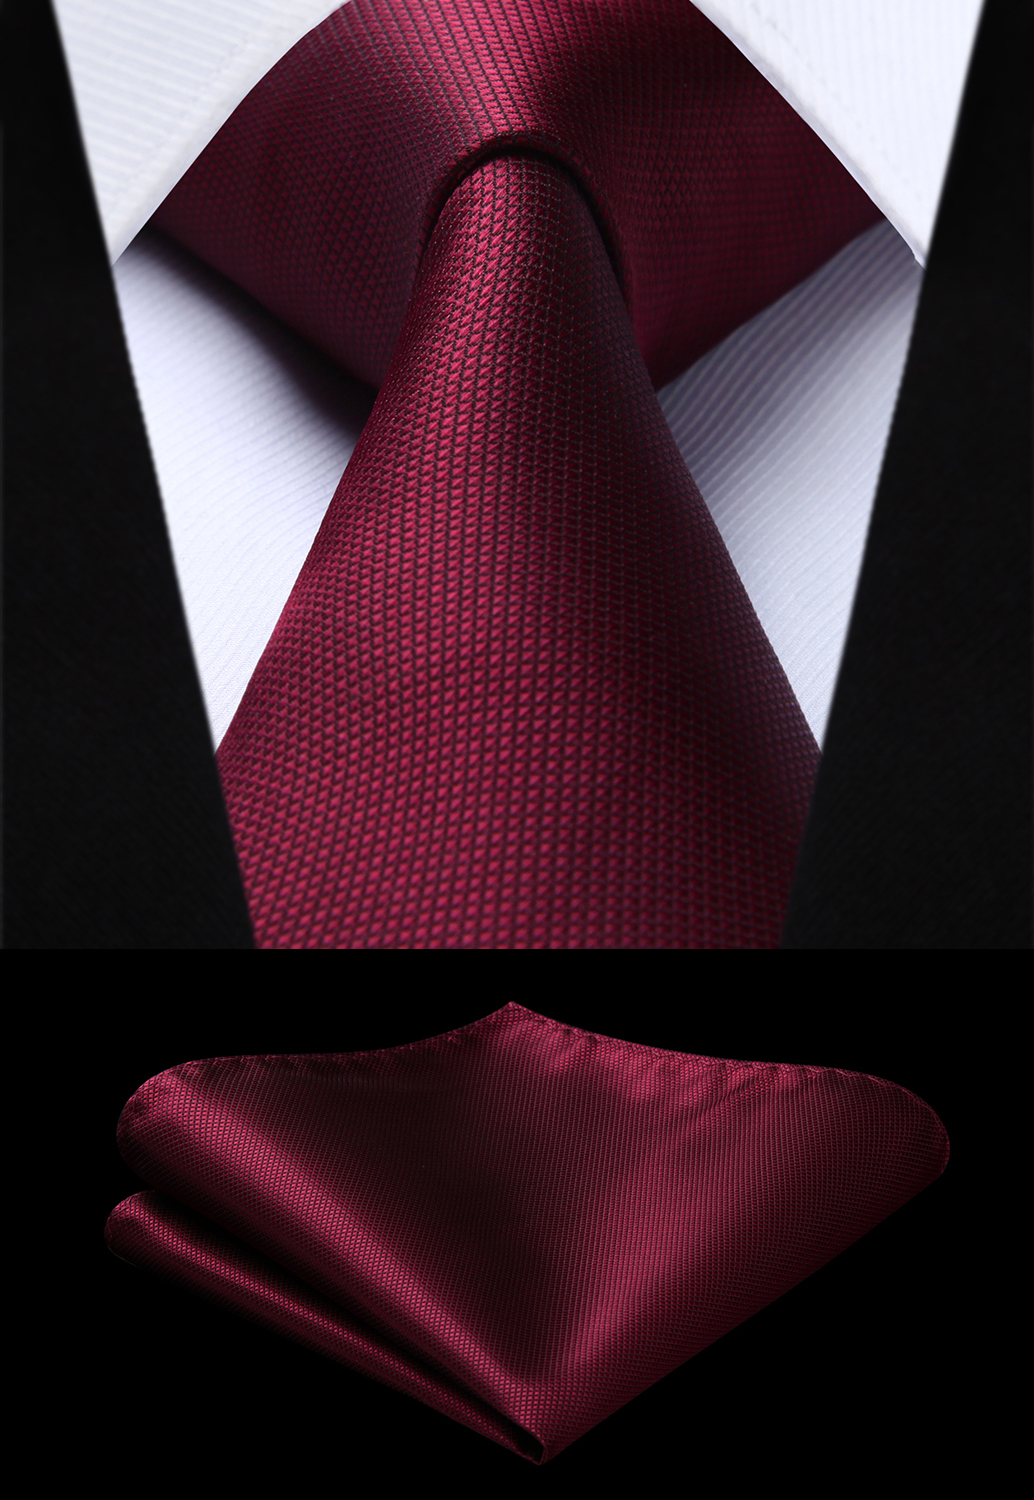 Party Wedding Classic Fashion Pocket Square Tie Woven Men Burgundy Tie Plaid & Check Necktie Handkerchief Set#TC626U8S